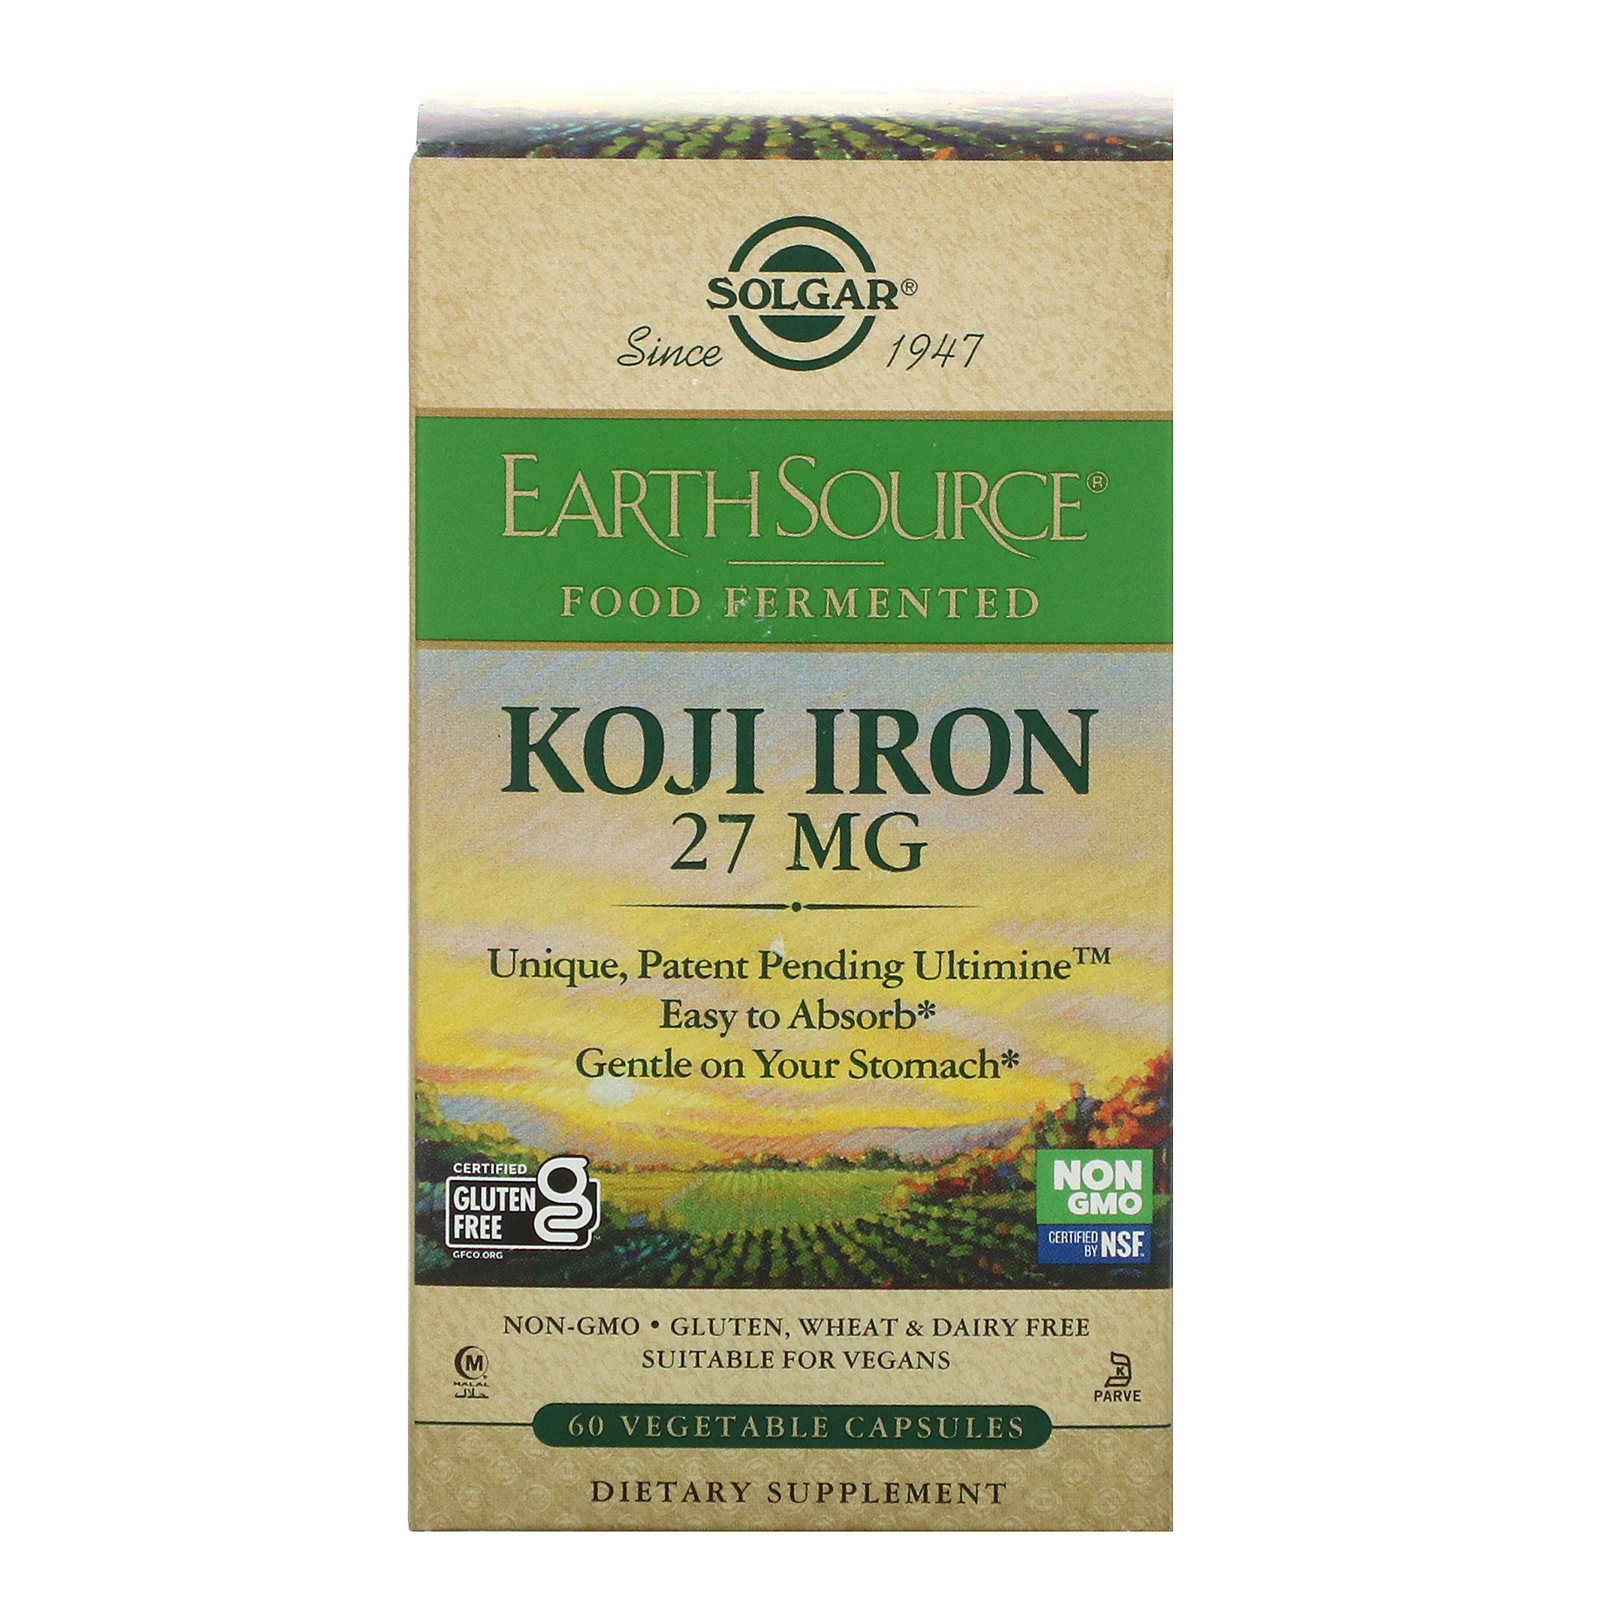 Solgar, EarthSource Food Fermented, Koji Iron, 27 mg, 60 Vegetable Capsules